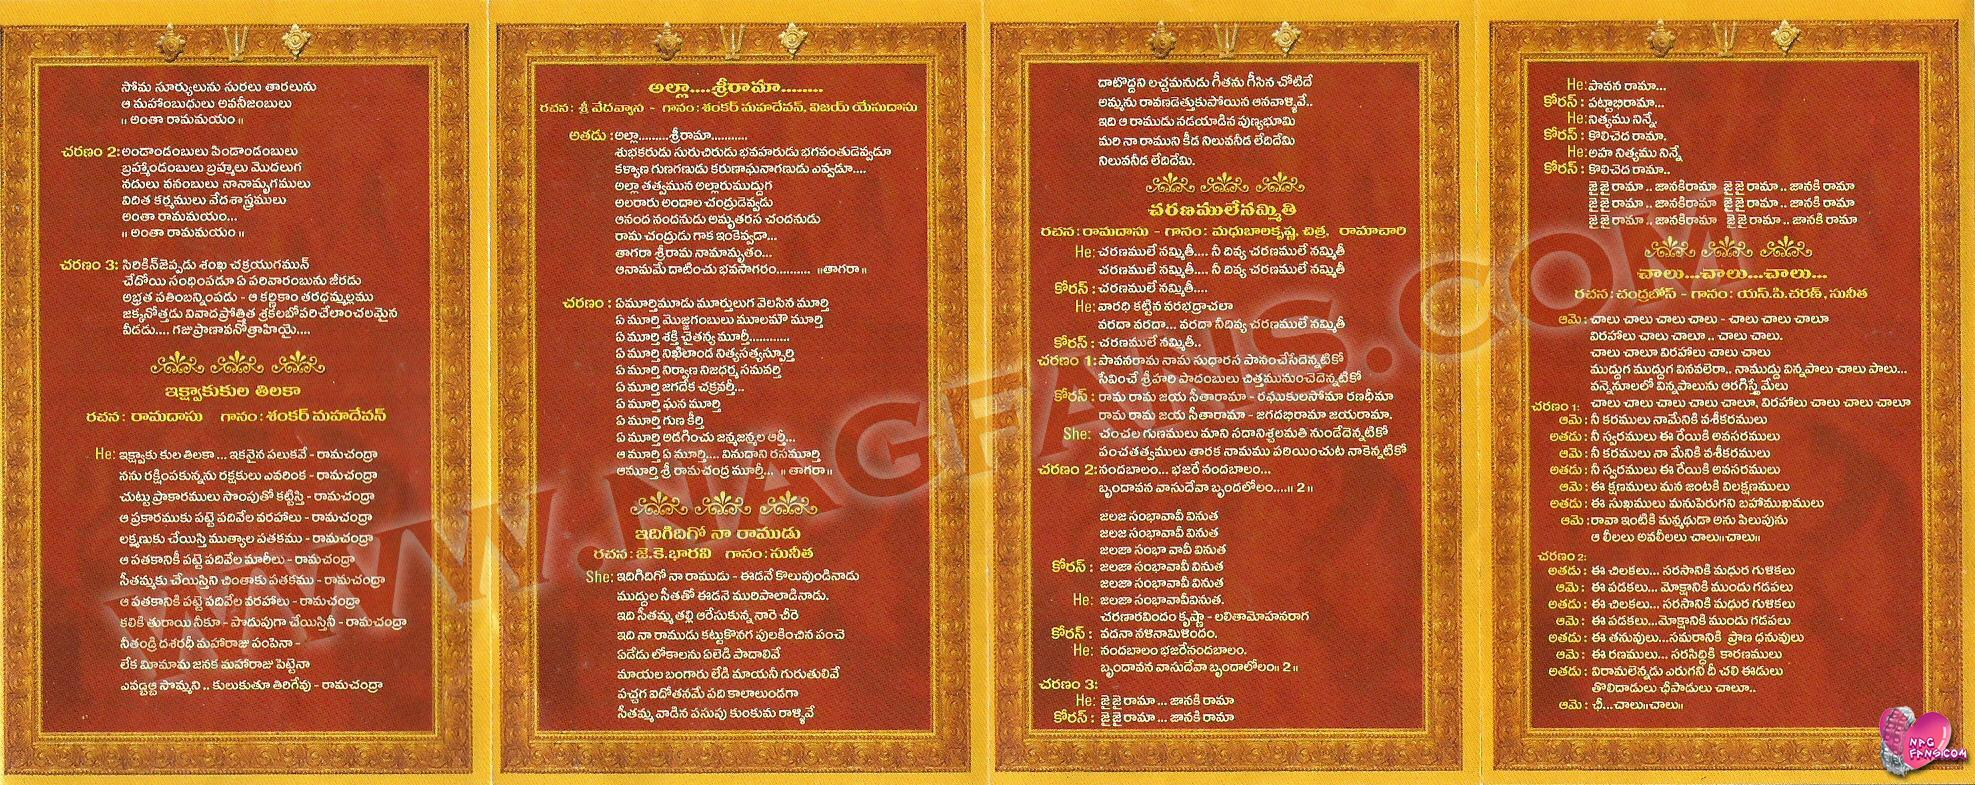 Sri Ramadasu Movie Songs Download Free - Guida Travels : powered by  Doodlekit